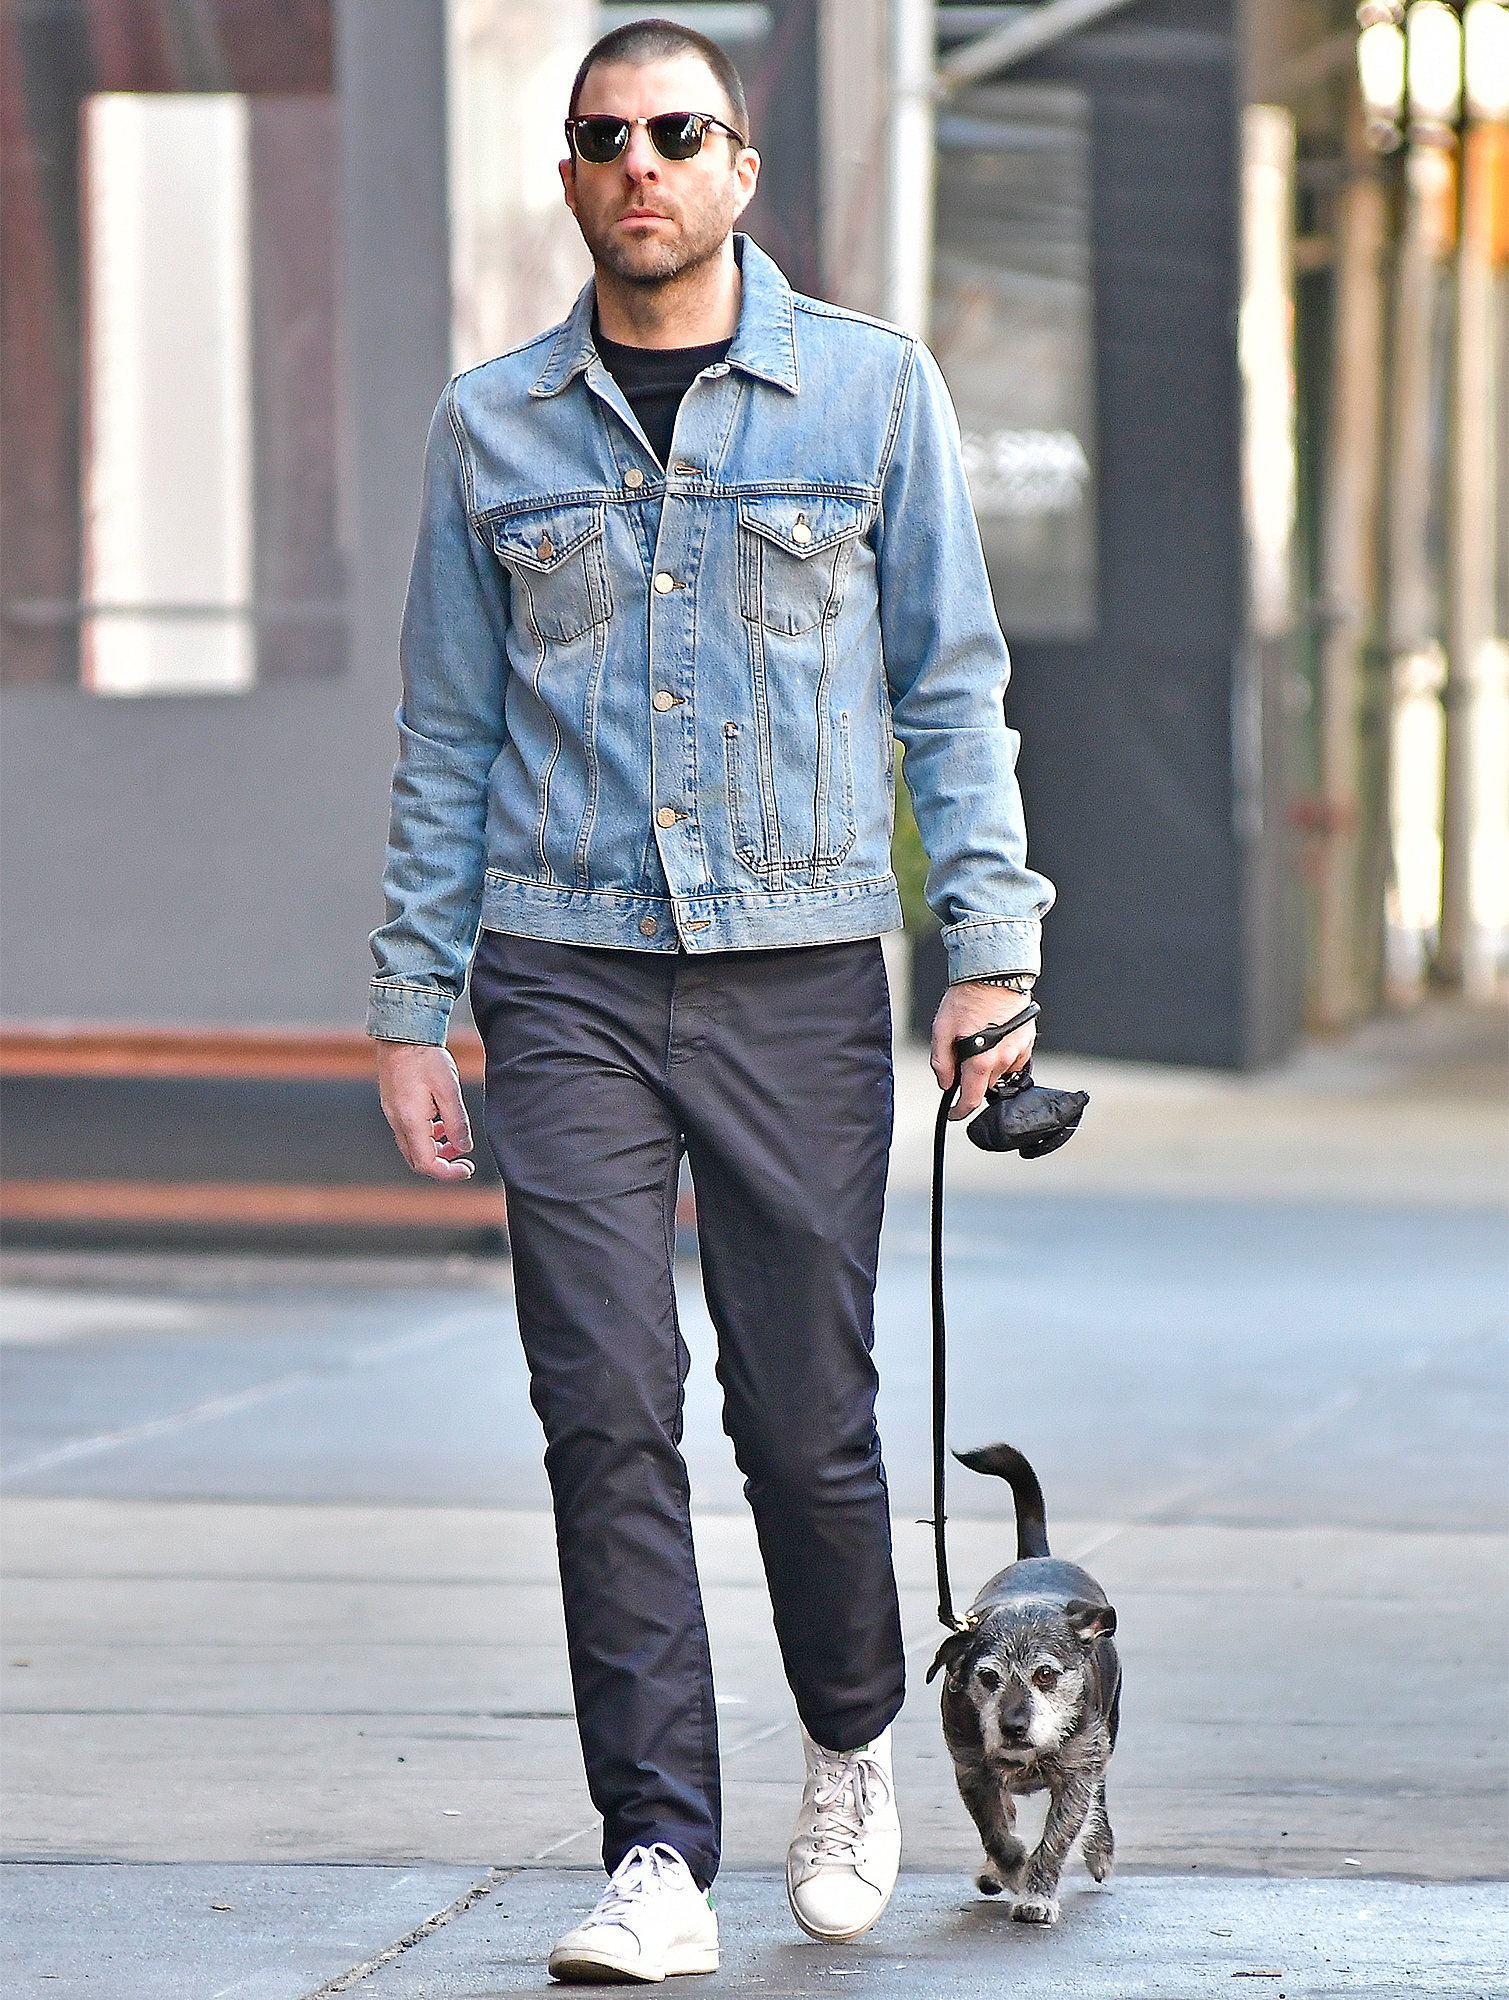 Zachary Quinto Walks His Dog In The Nice Weather Wearing Denim Jacket, Dark Blue Pants And White Sneakers In NOHO, New York City